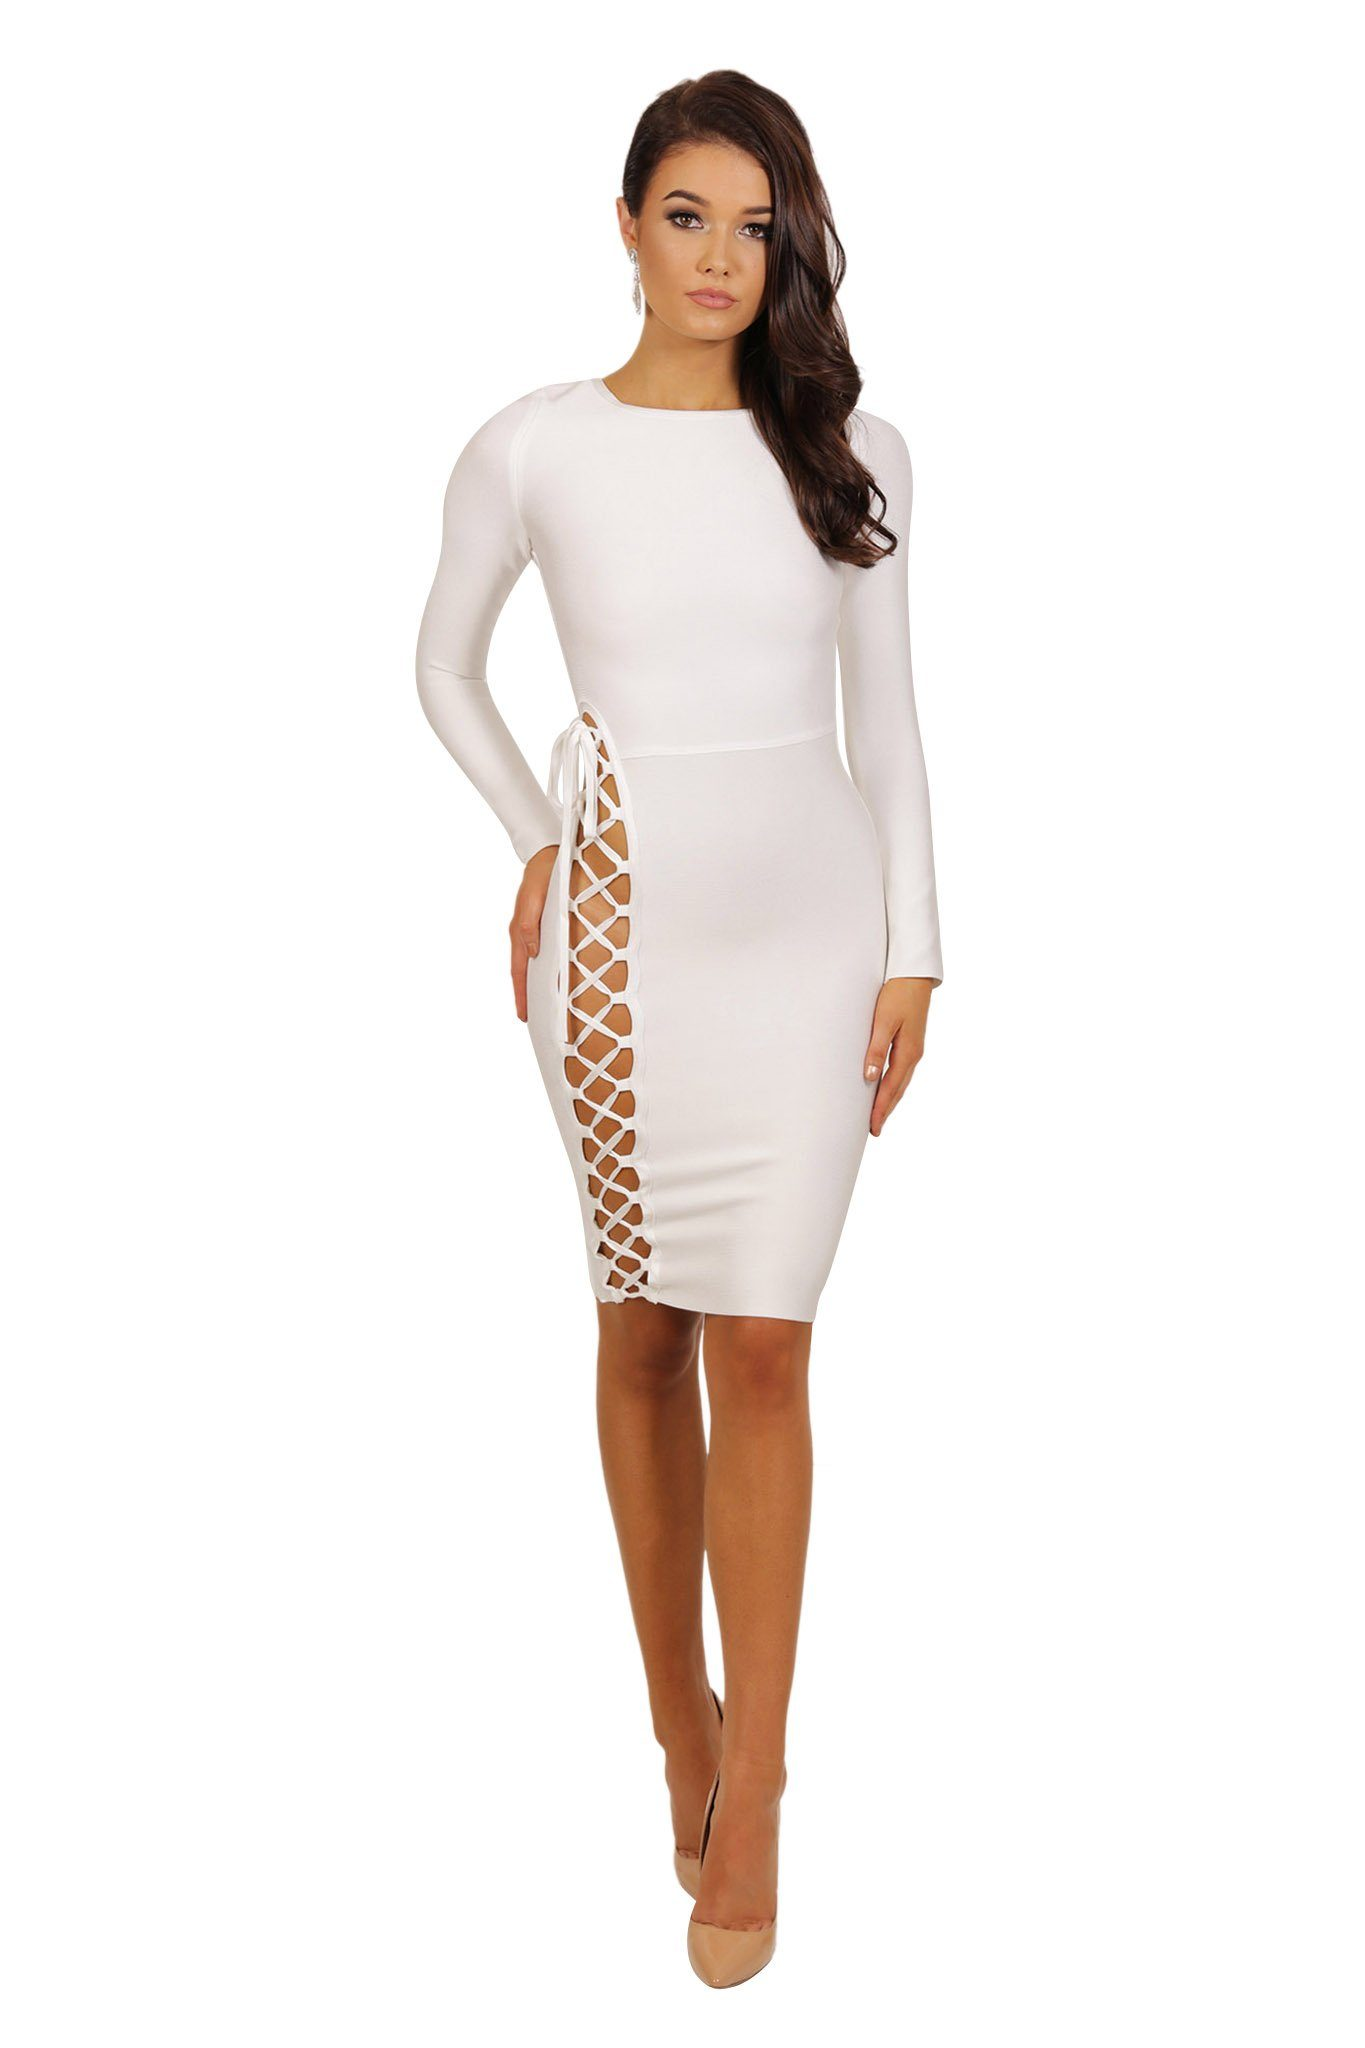 Front of long sleeve knee length form fitted bandage dress with side lace up design from waist to hem in white